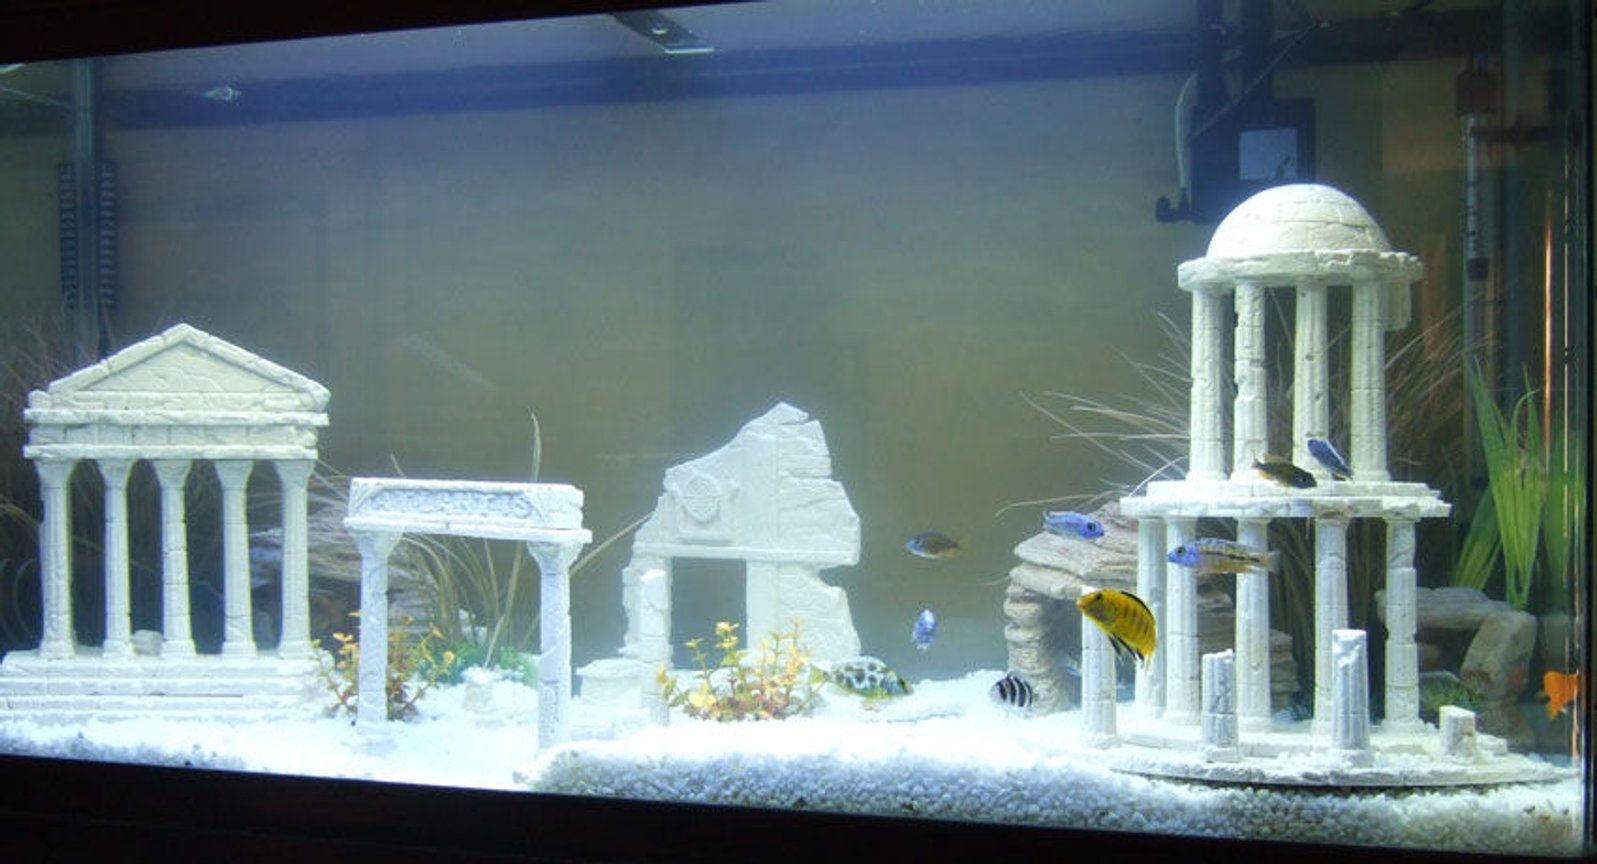 freshwater fish - betta splendens - betta - male stocking in 1 gallon tank - the lost city of atlantis